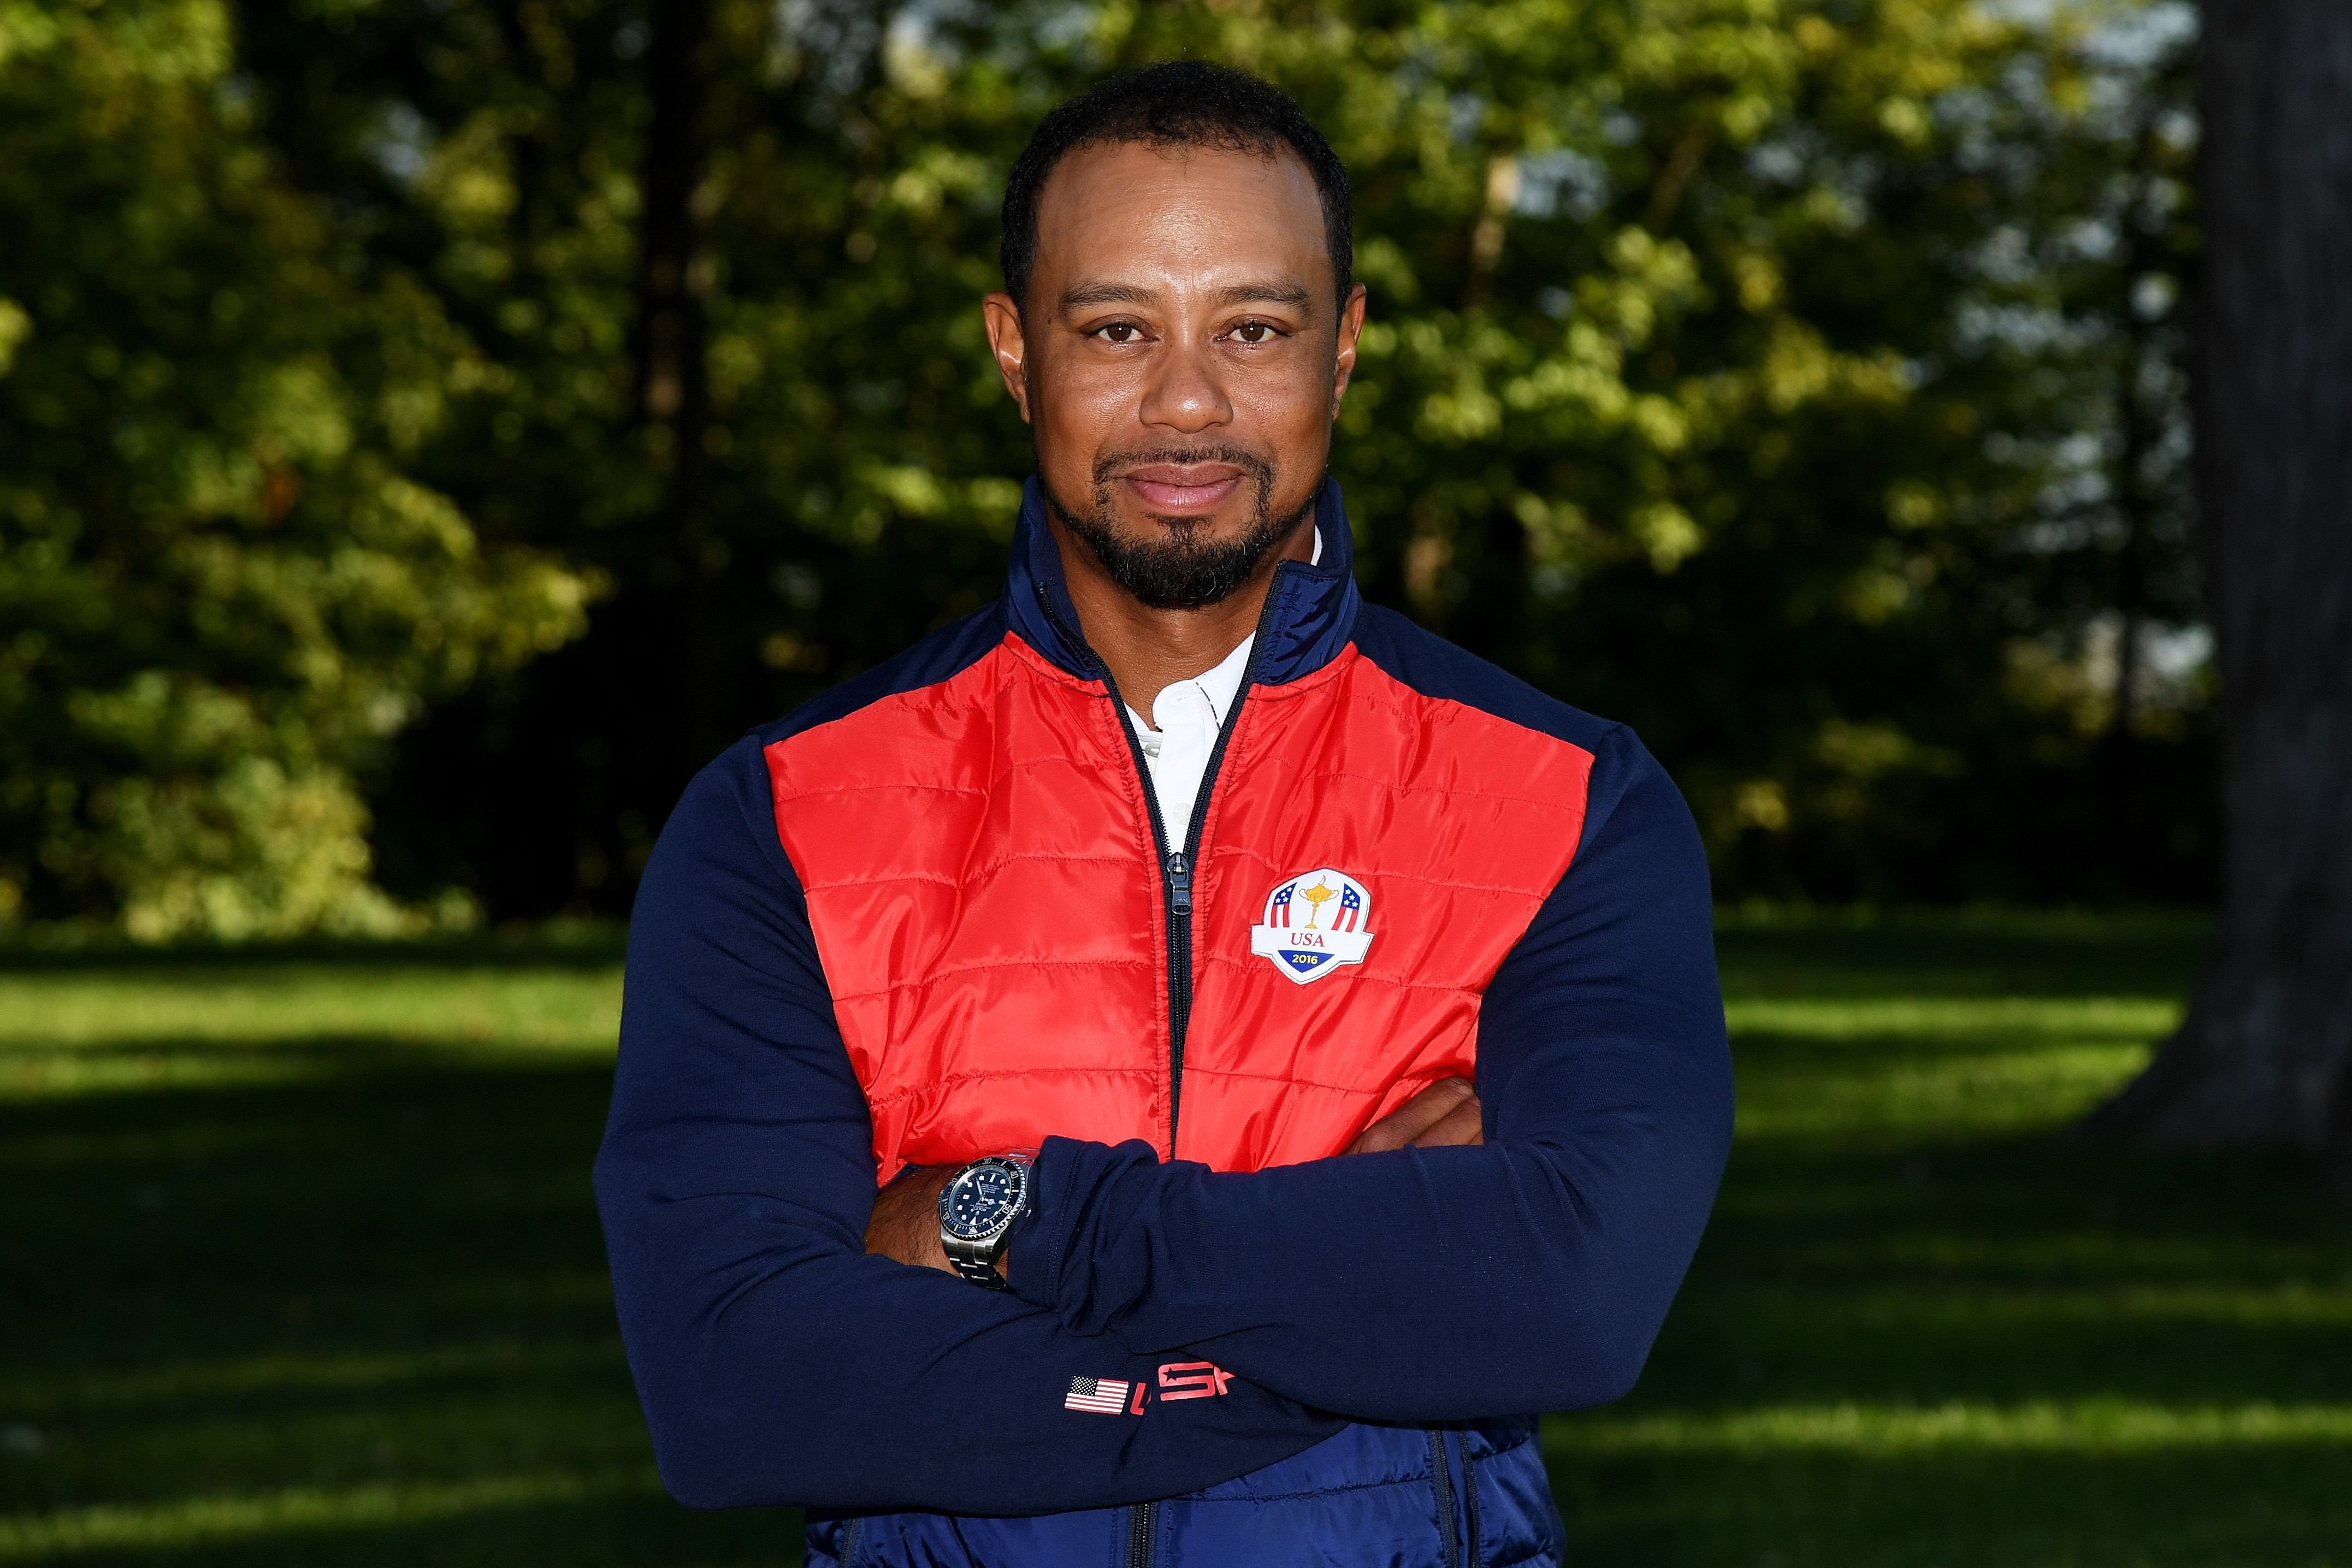 Tiger Woods poses during team photocalls prior to the 2016 Ryder Cup at Hazeltine National Golf Club on September 27, 2016 in Chaska, Minnesota. | Source: Getty Images